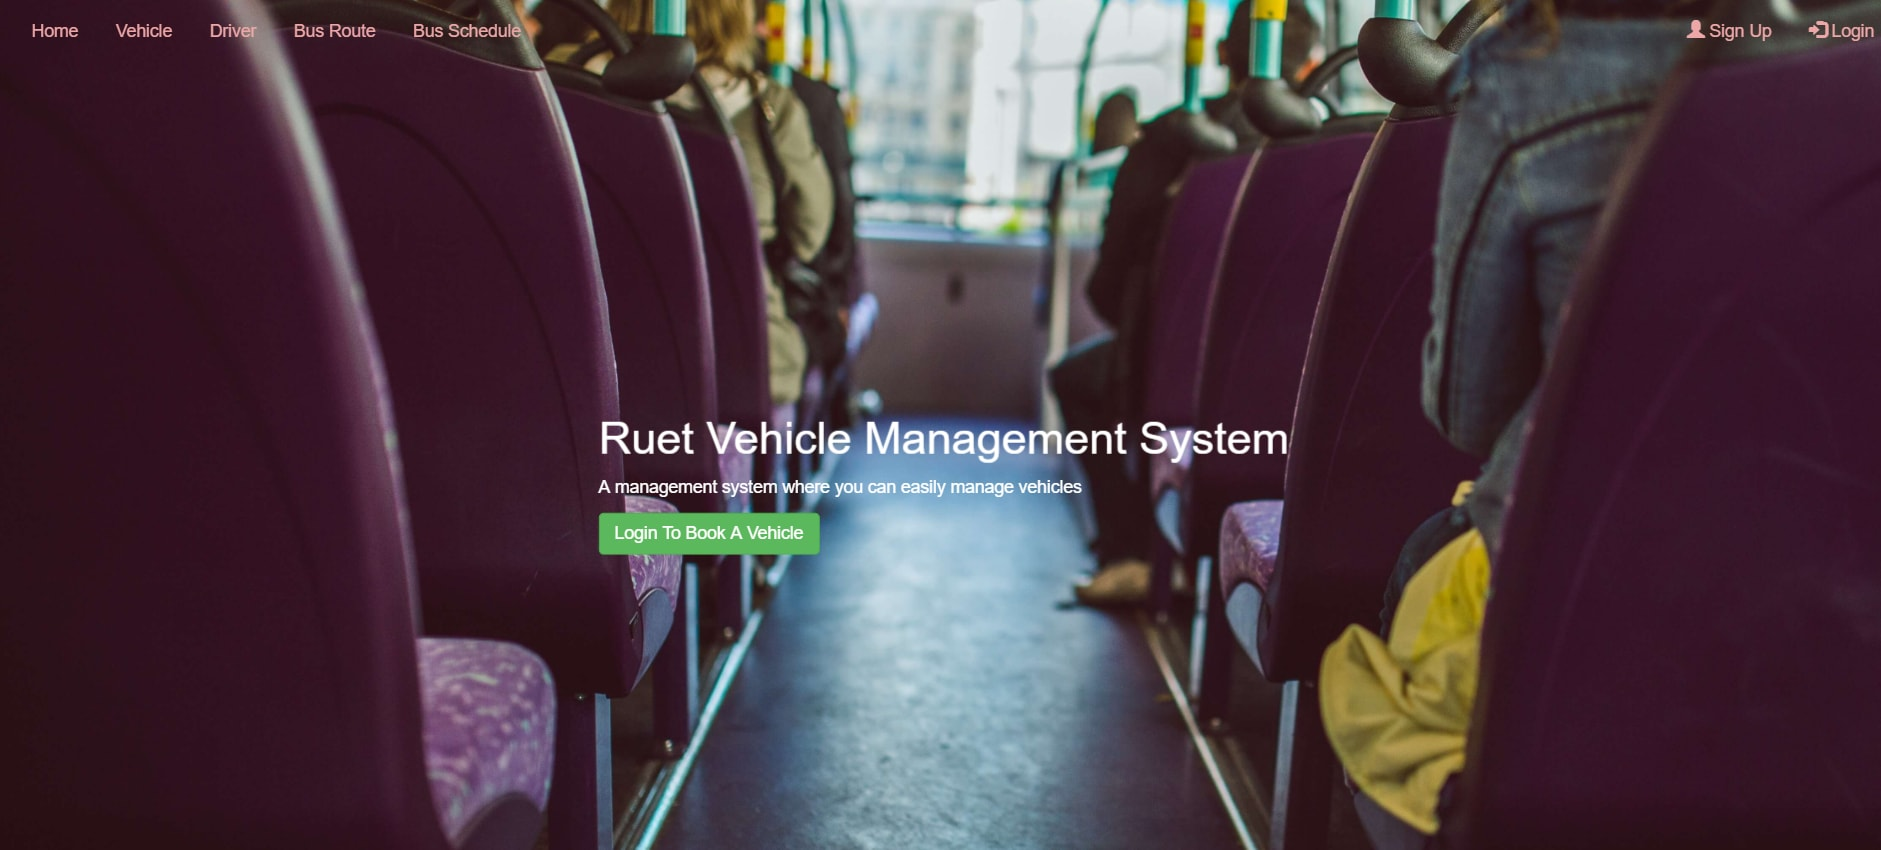 image of vehicle management system